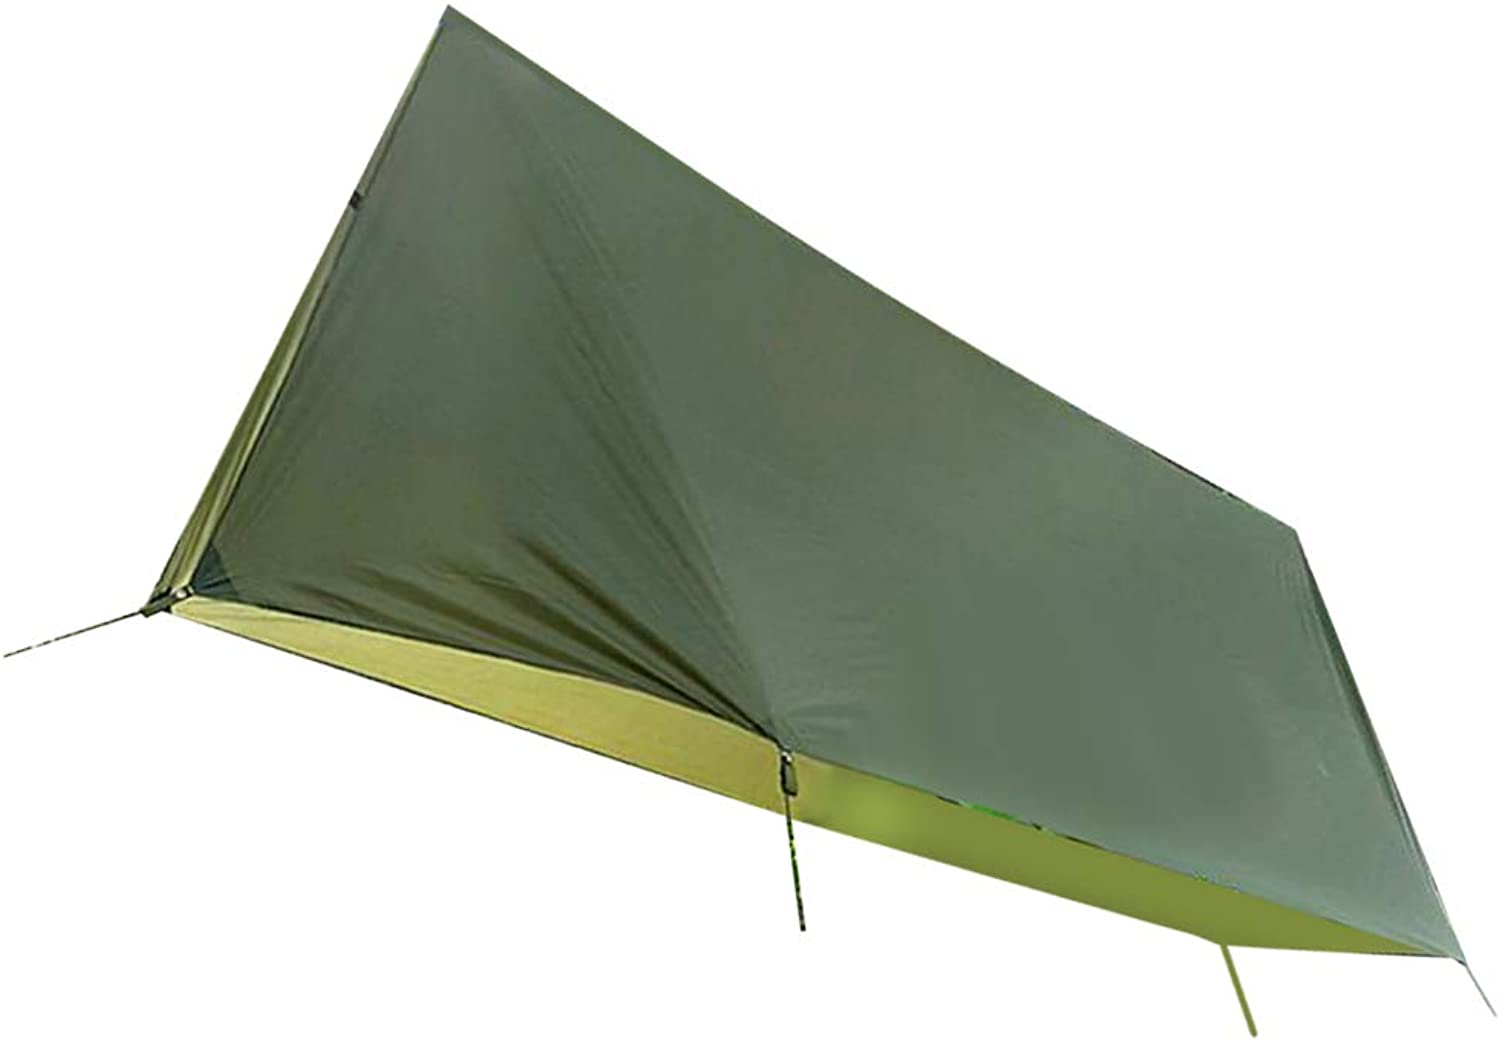 Baosity Polyester Waterproof Camping Tent 4 People Sun Rain Shelter Tent Tarp Cover, Army Green